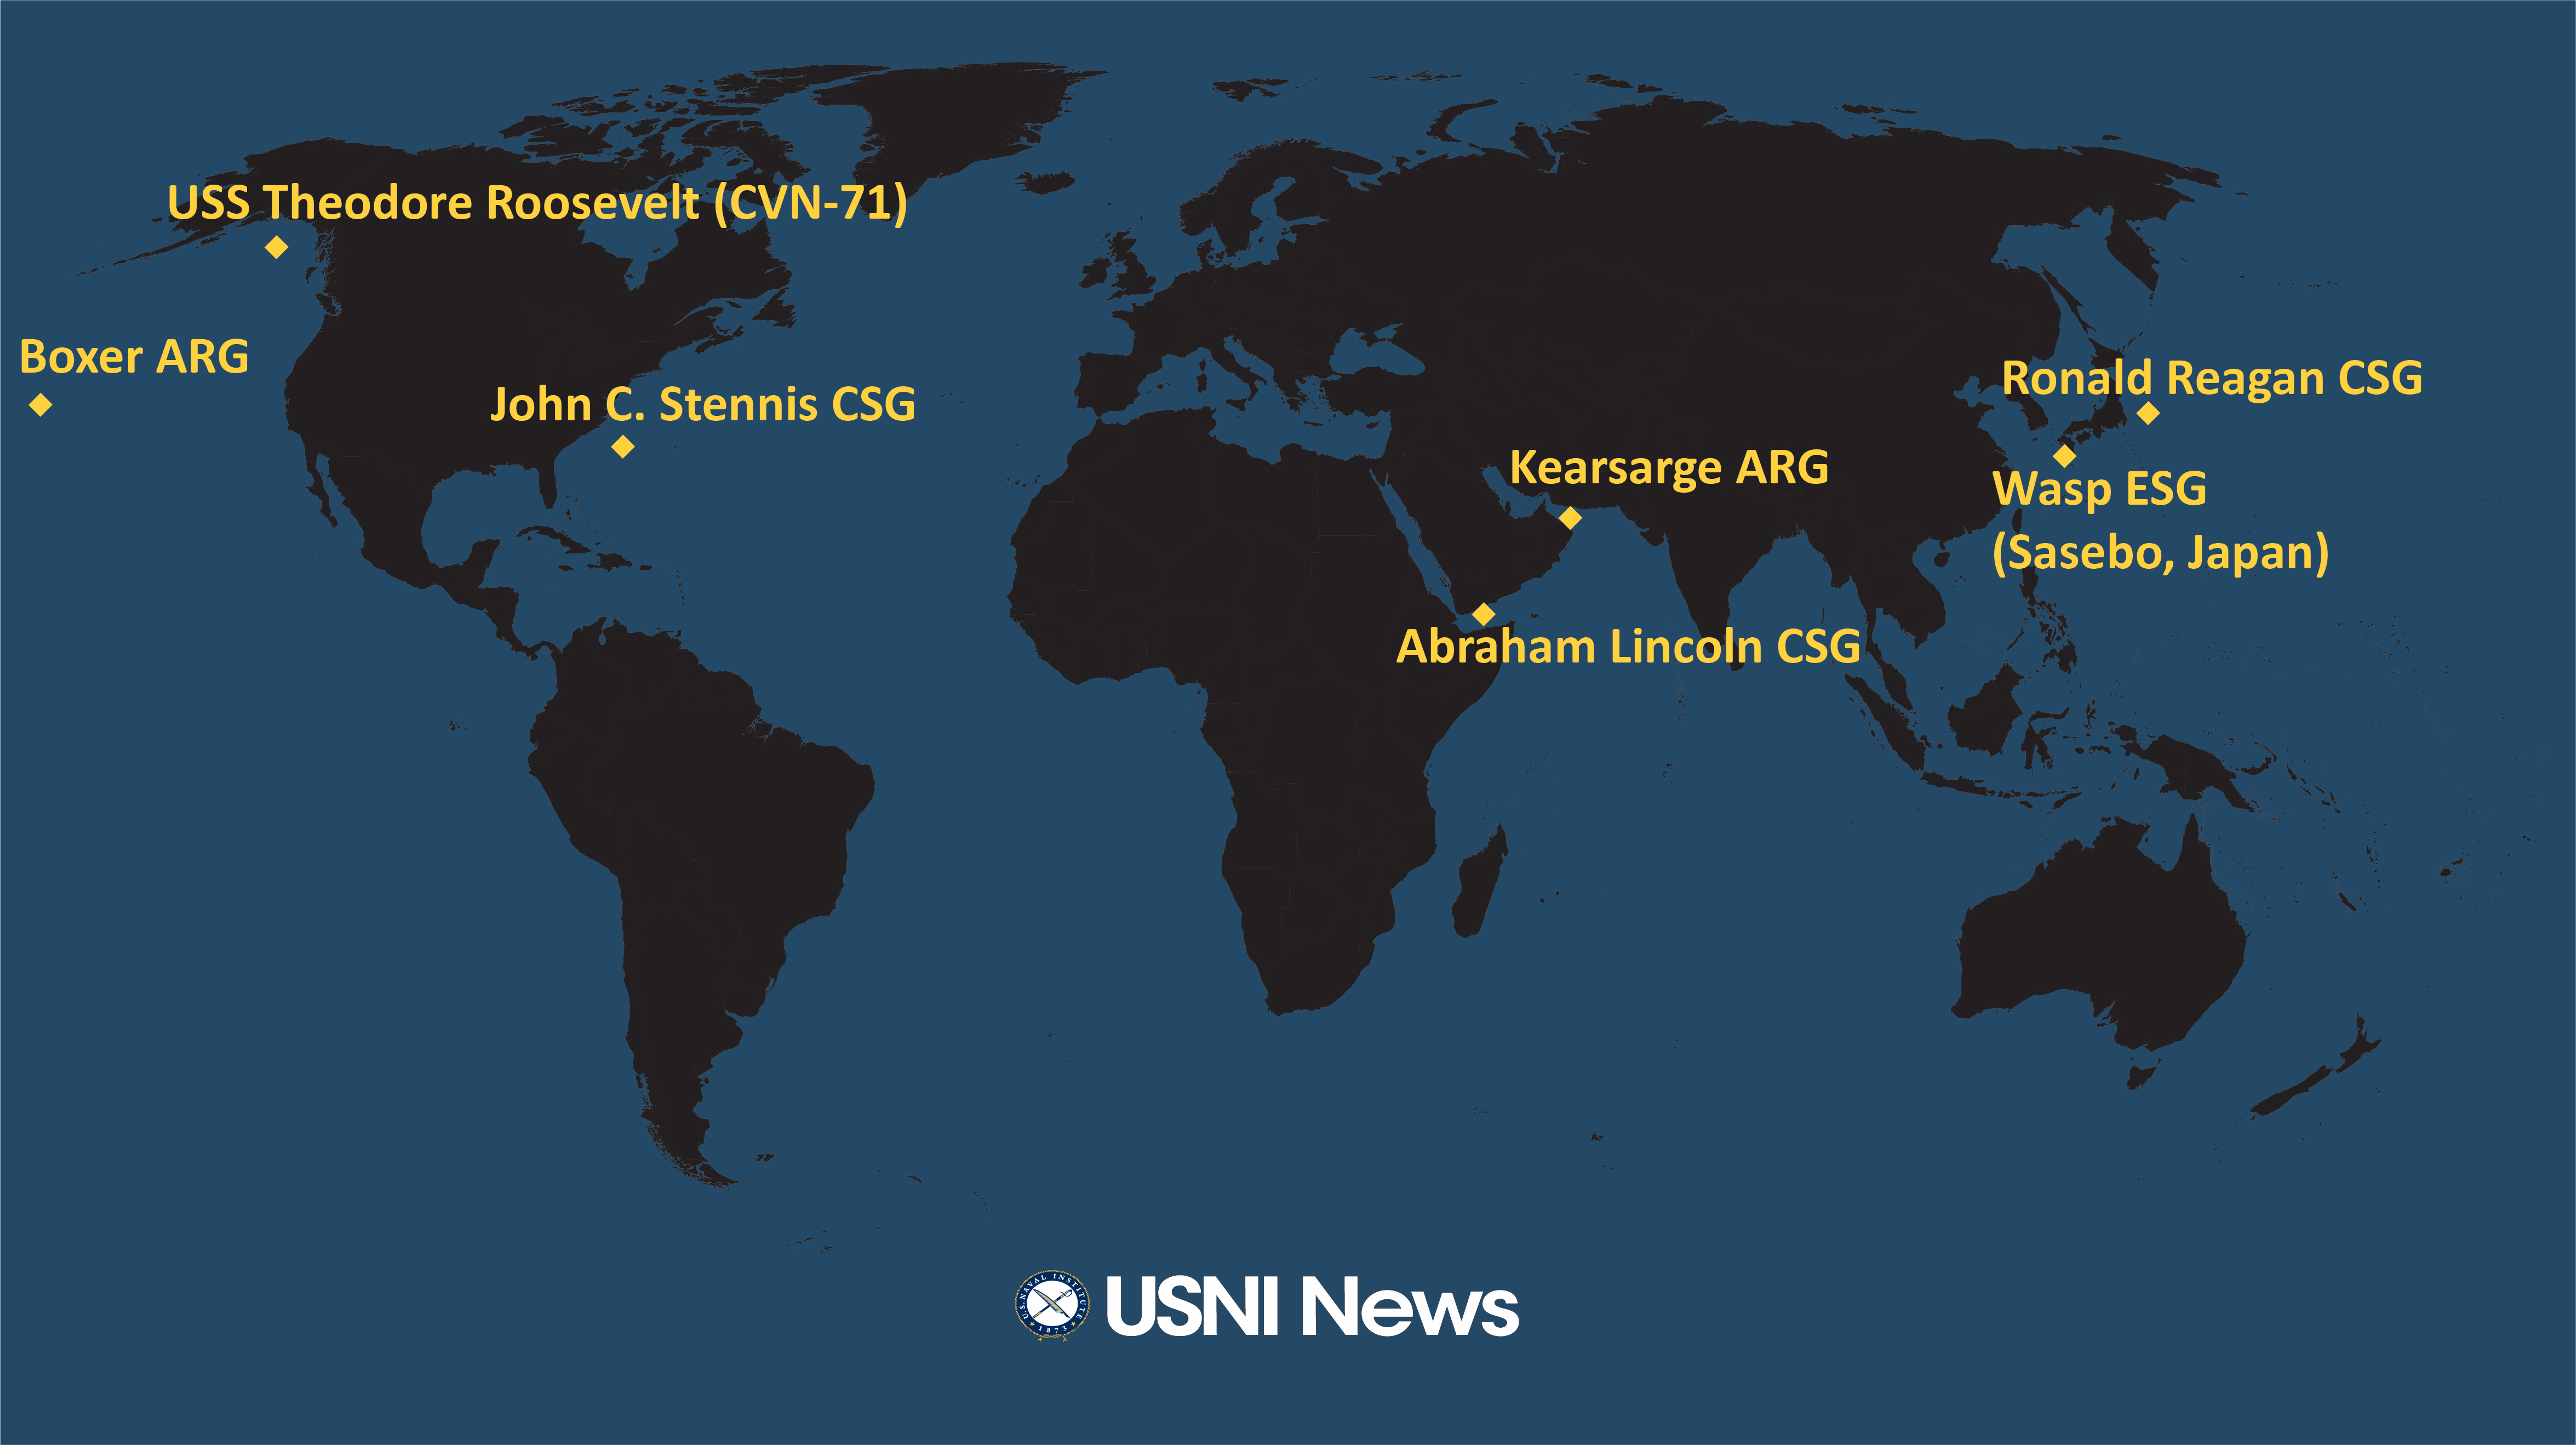 Us Navy Ship Locations Current Map USNI News Fleet and Marine Tracker: May 13, 2019